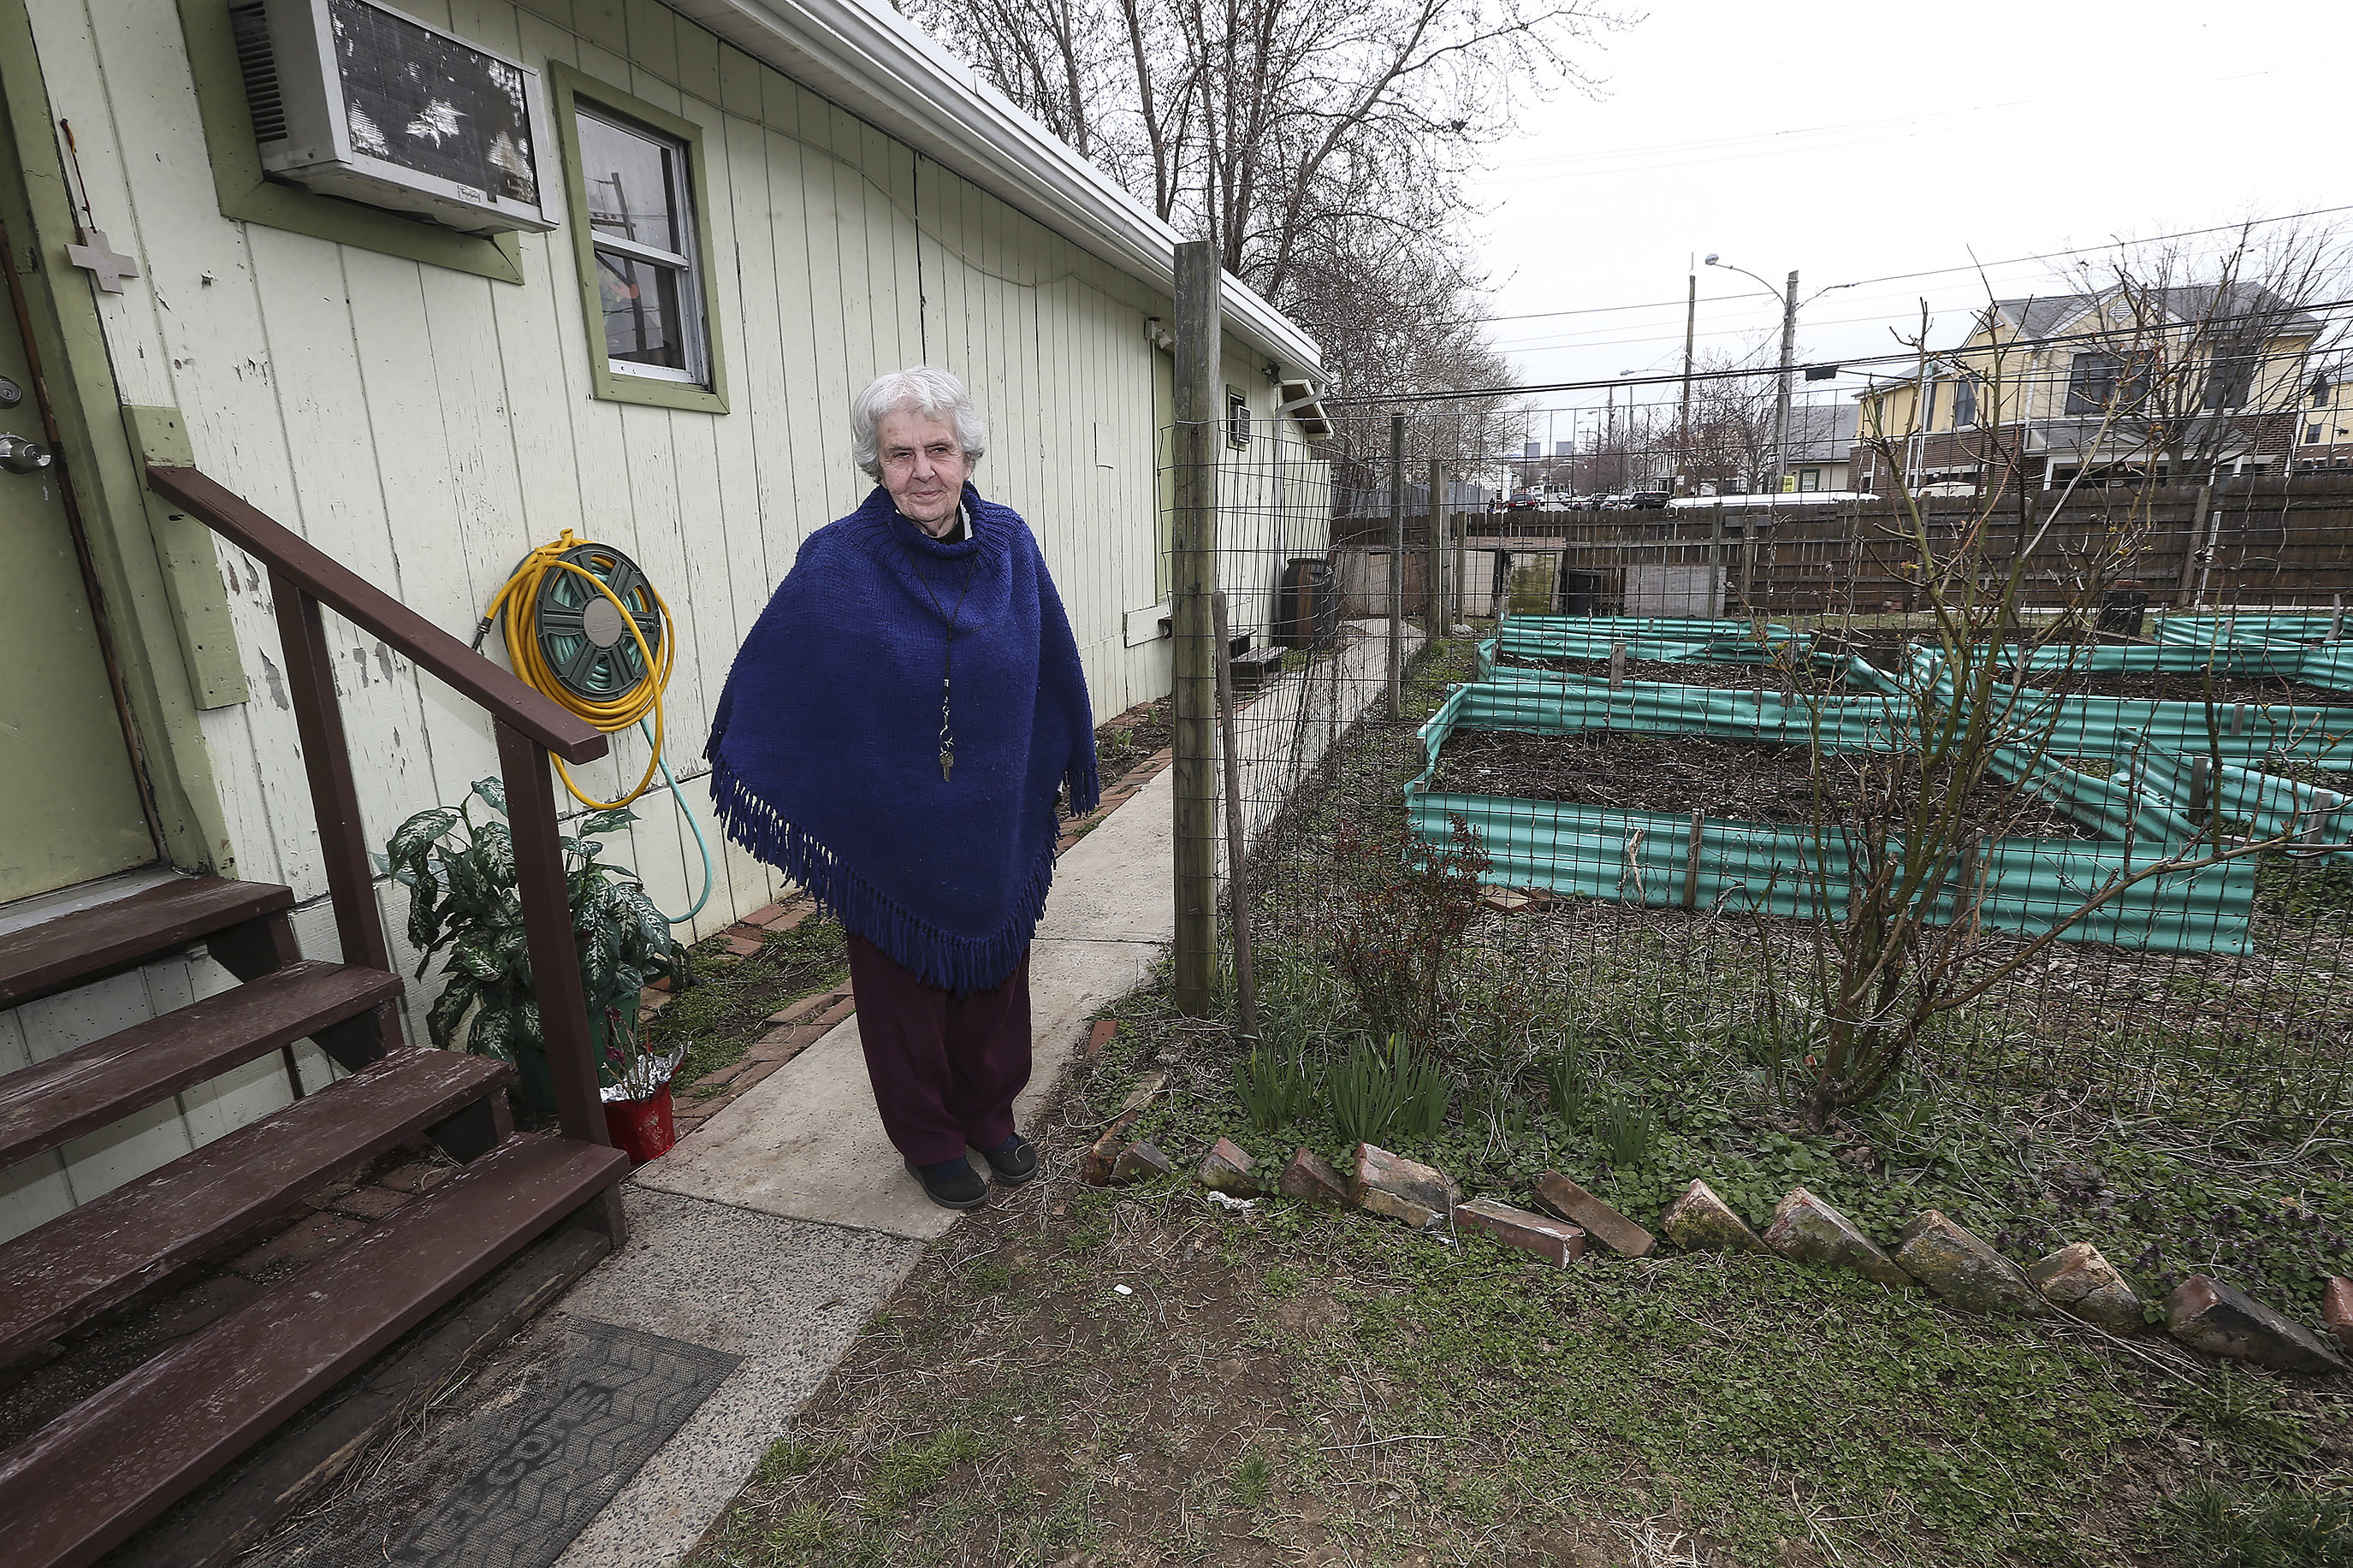 Sister Margaret McKenna at in the New Jerusalem Laura recovery Center Garden on Norris Street in North Philadelphia. Tuesday, March 27, 2018. STEVEN M. FALK / Staff Photographer